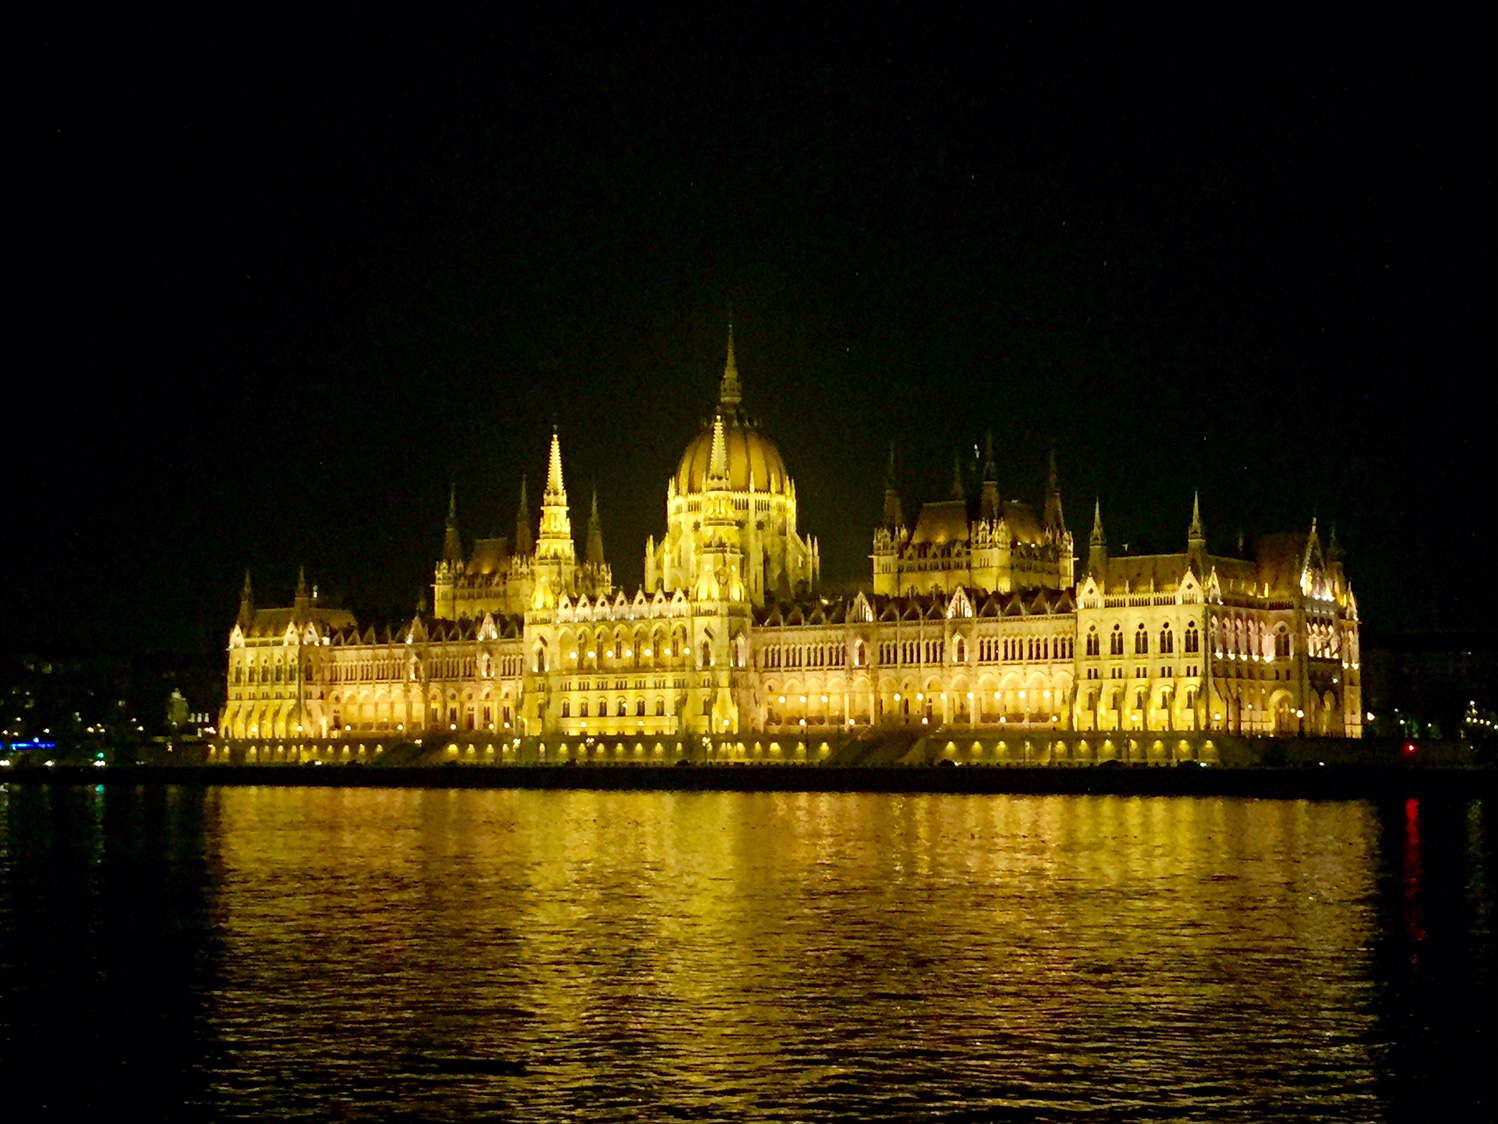 Budapest, Hungary at night